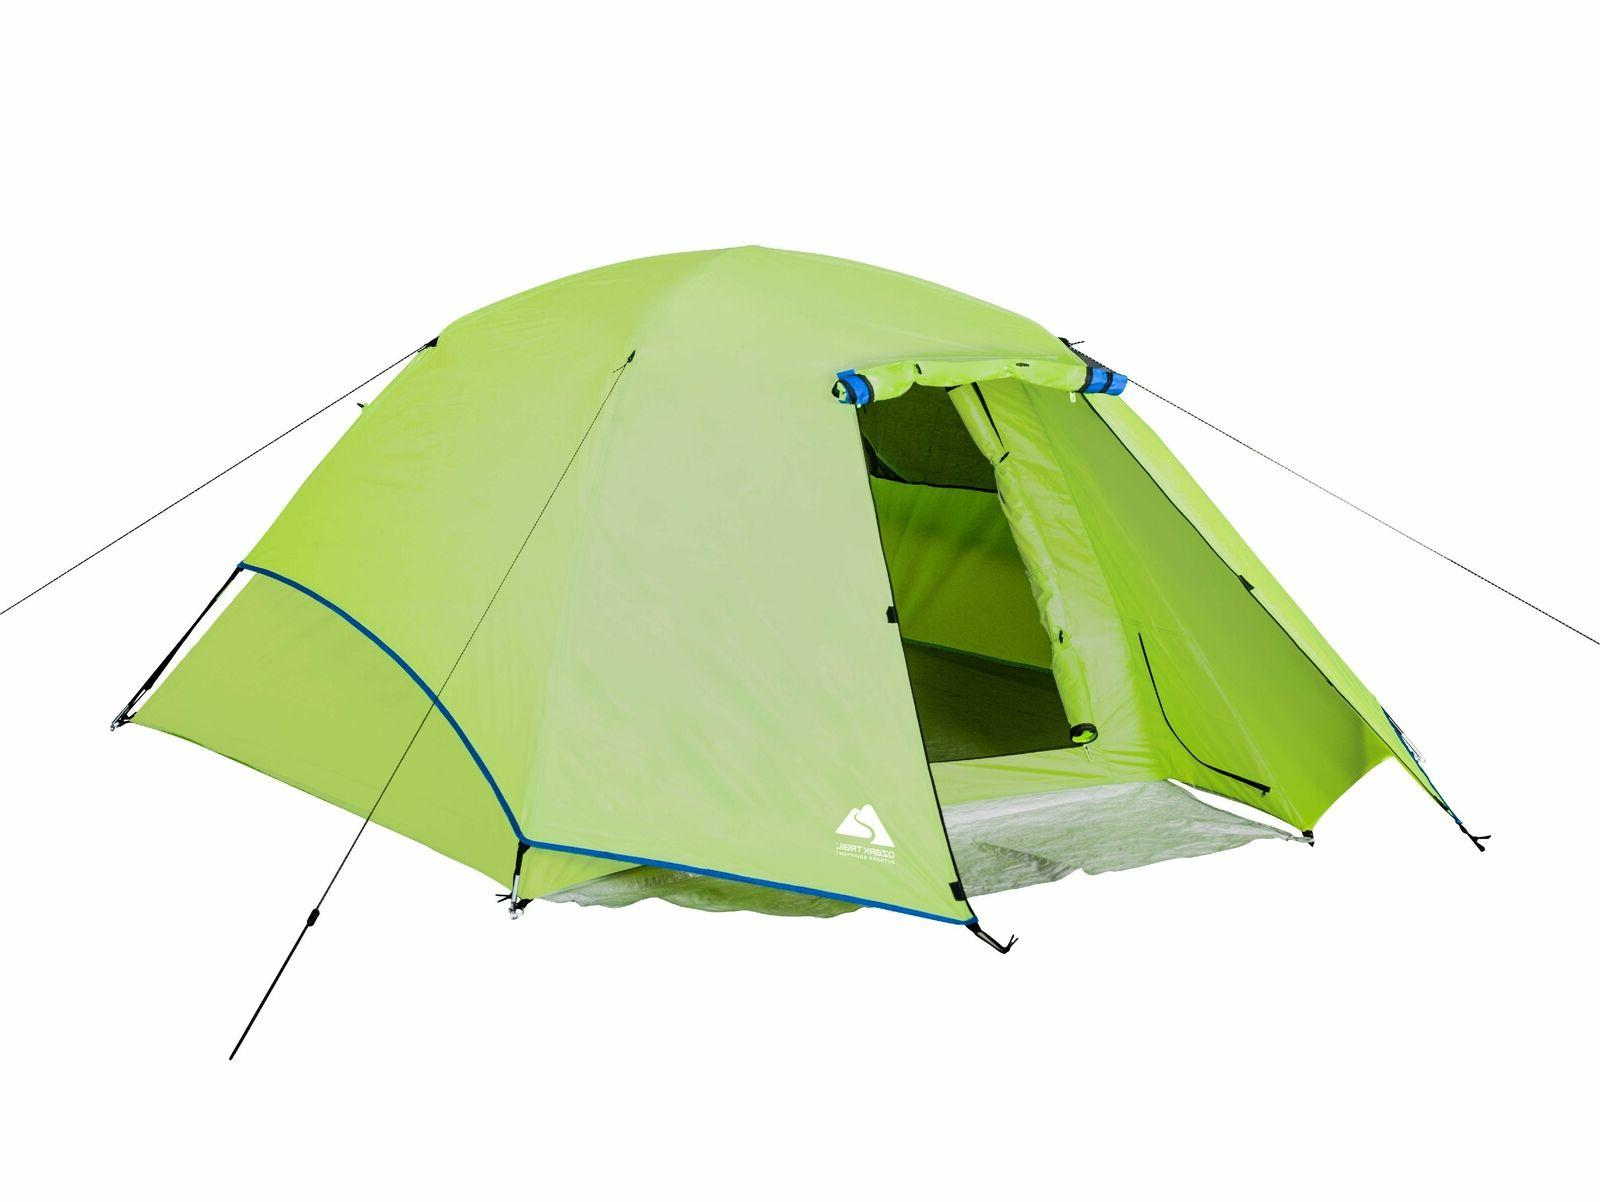 4 person outdoor camping dome tent